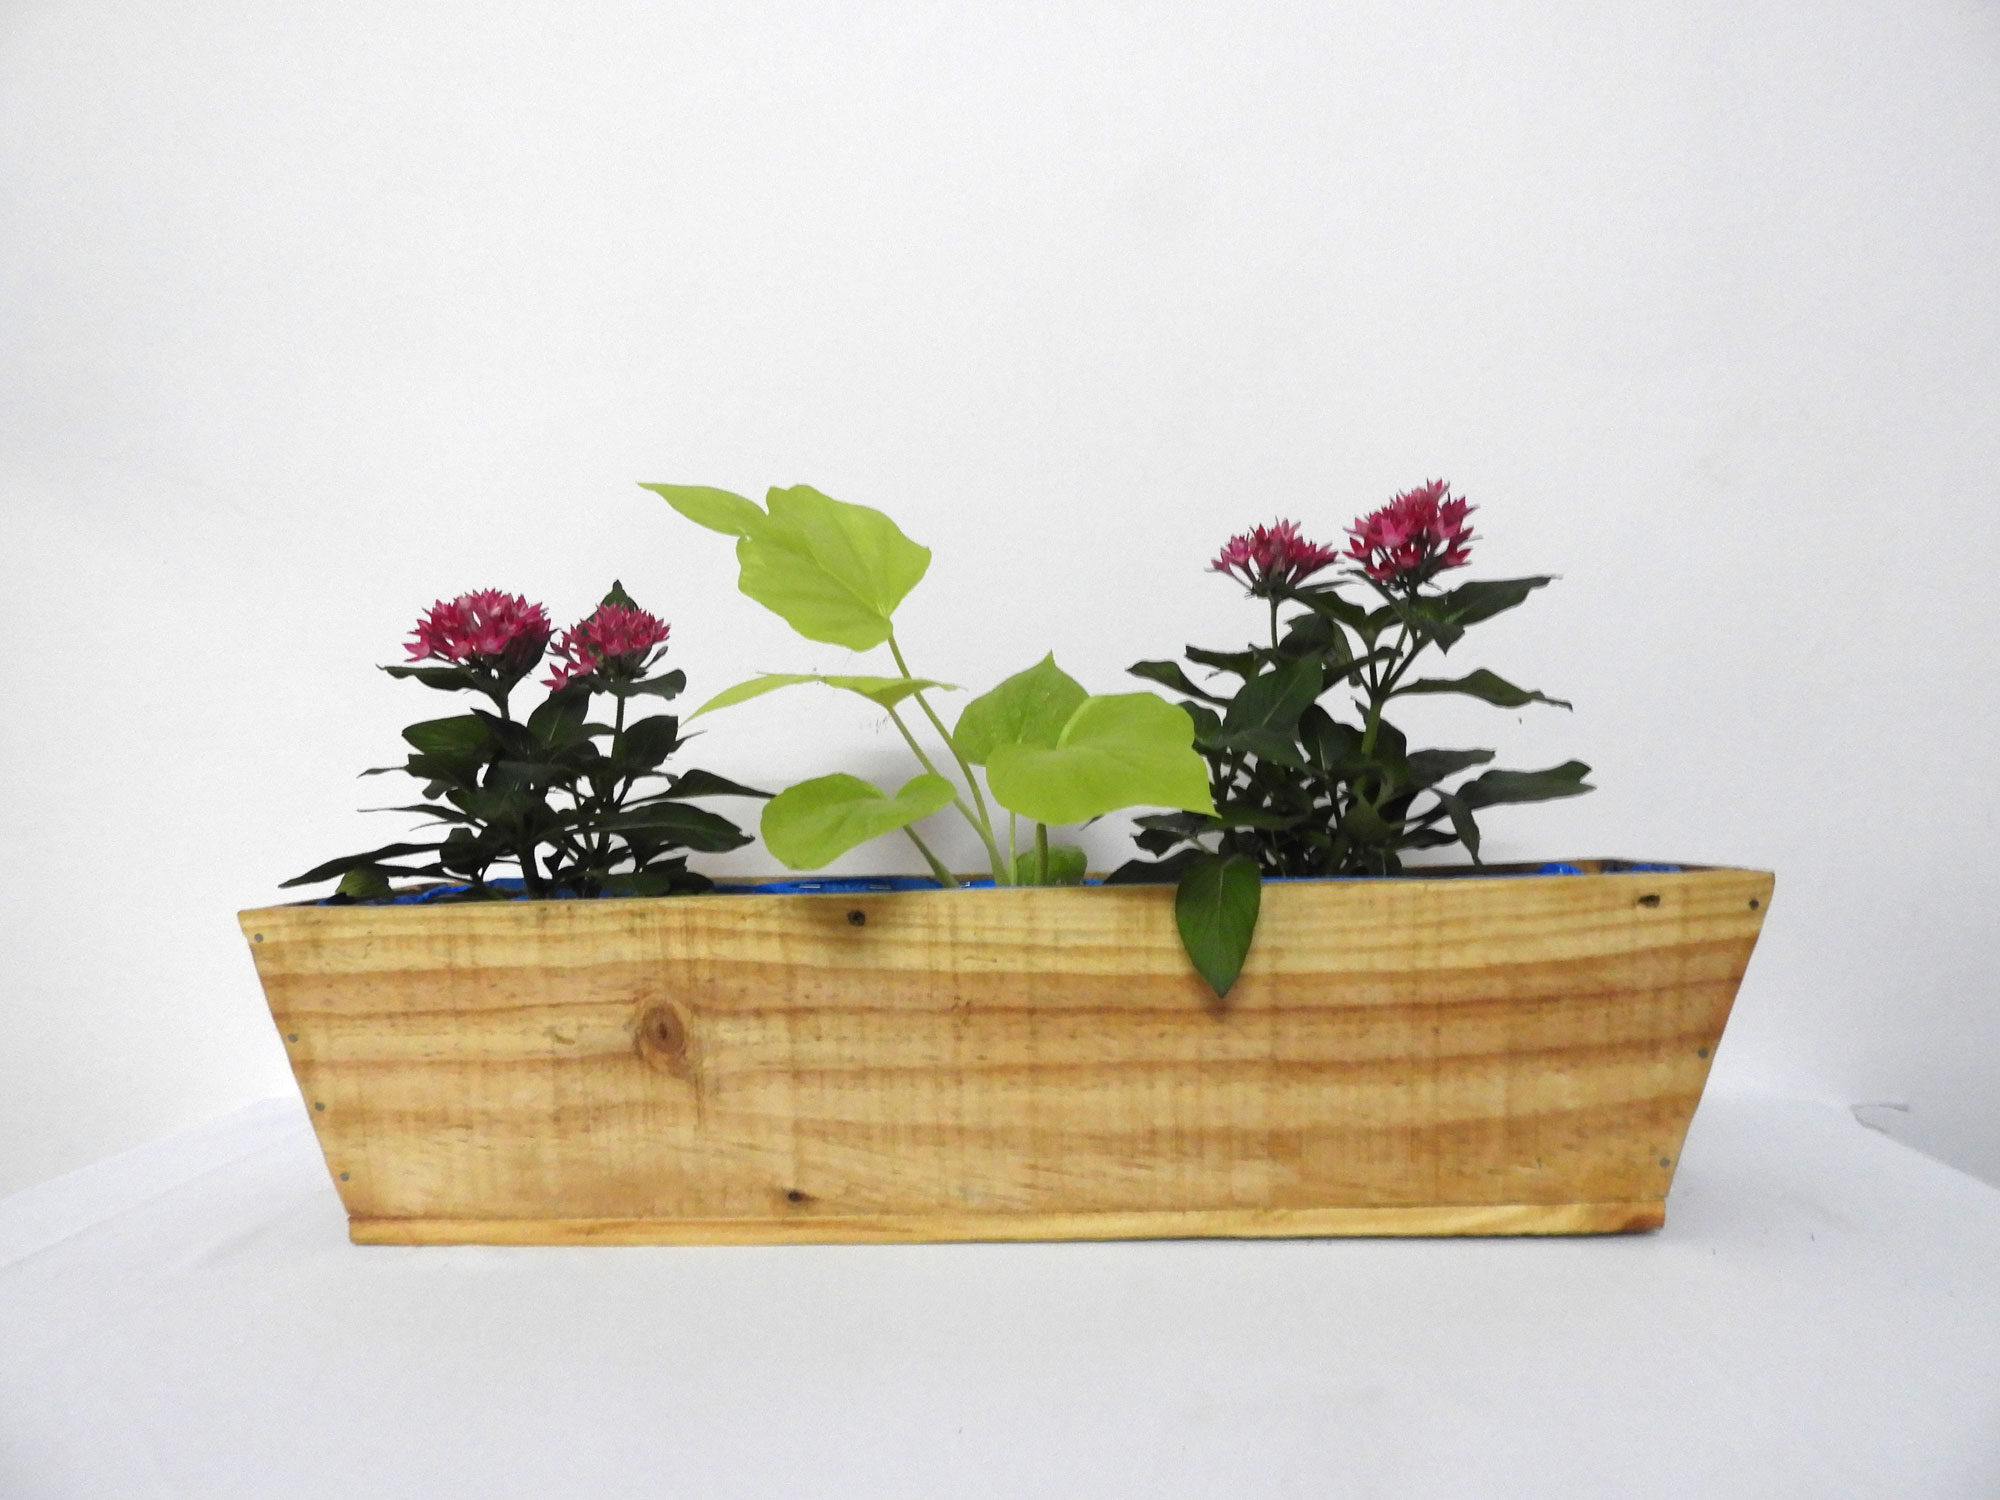 Wood Railing Planter Boat (m)